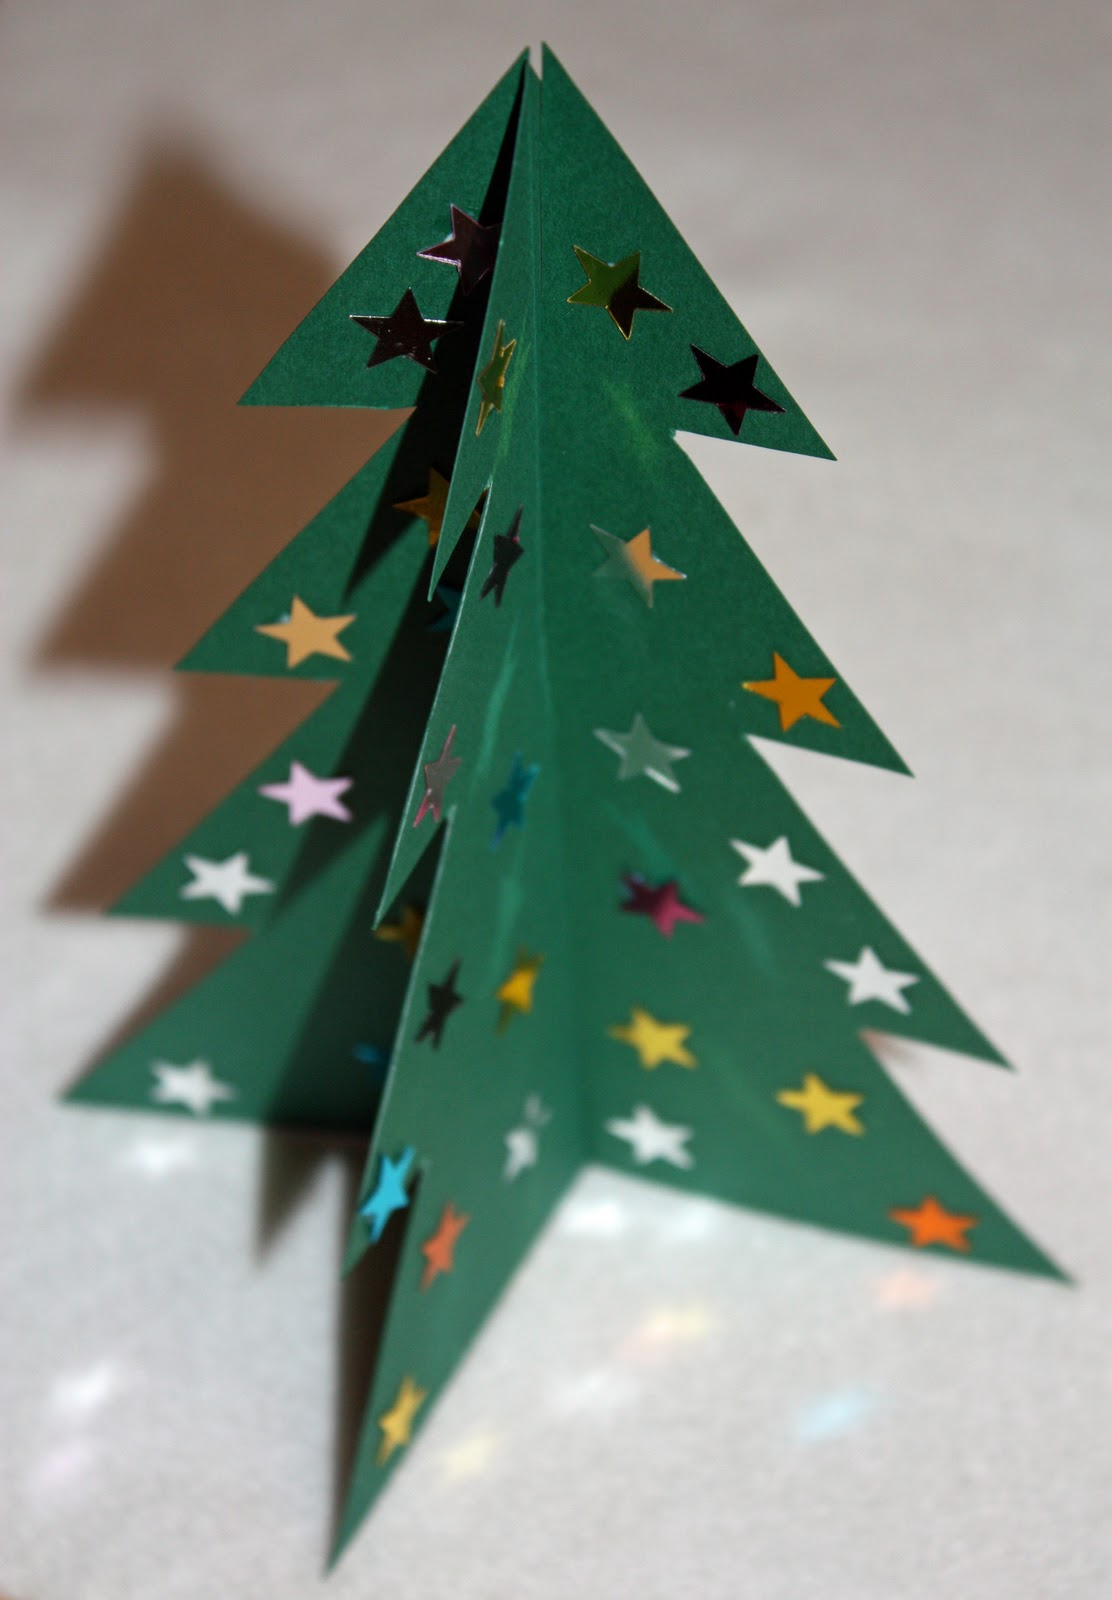 Craft And Activities For All Ages!: Make A 3D Card Christmas Throughout 3D Christmas Tree Card Template